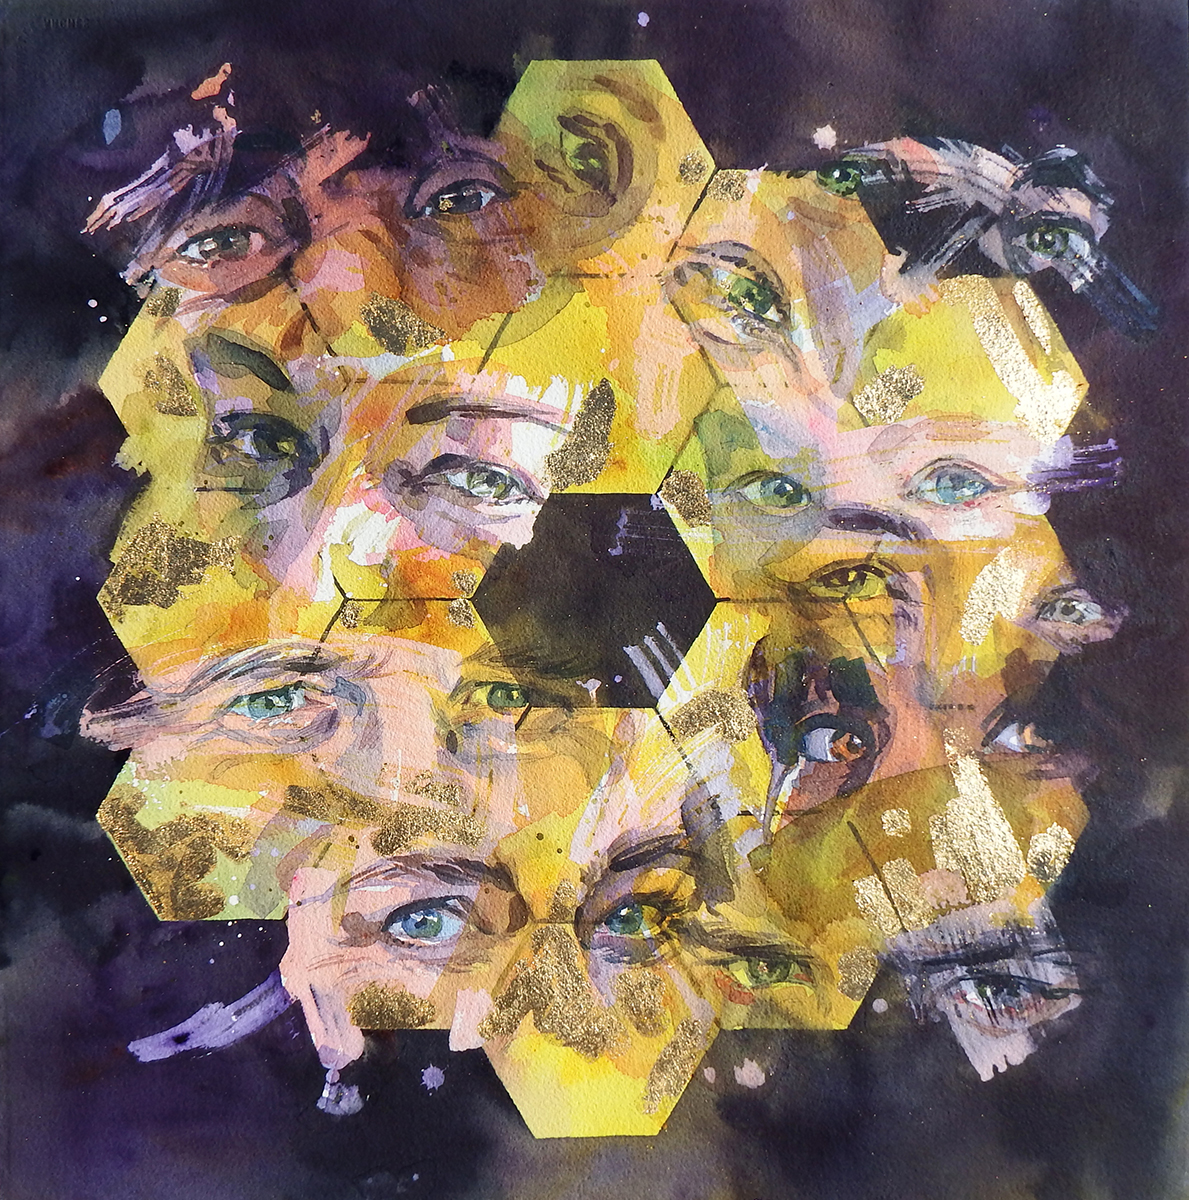 Watercolor tattoo artists in houston texas - Icon Gaze Watercolor And 24k Gold Leaf On Paper The Artist